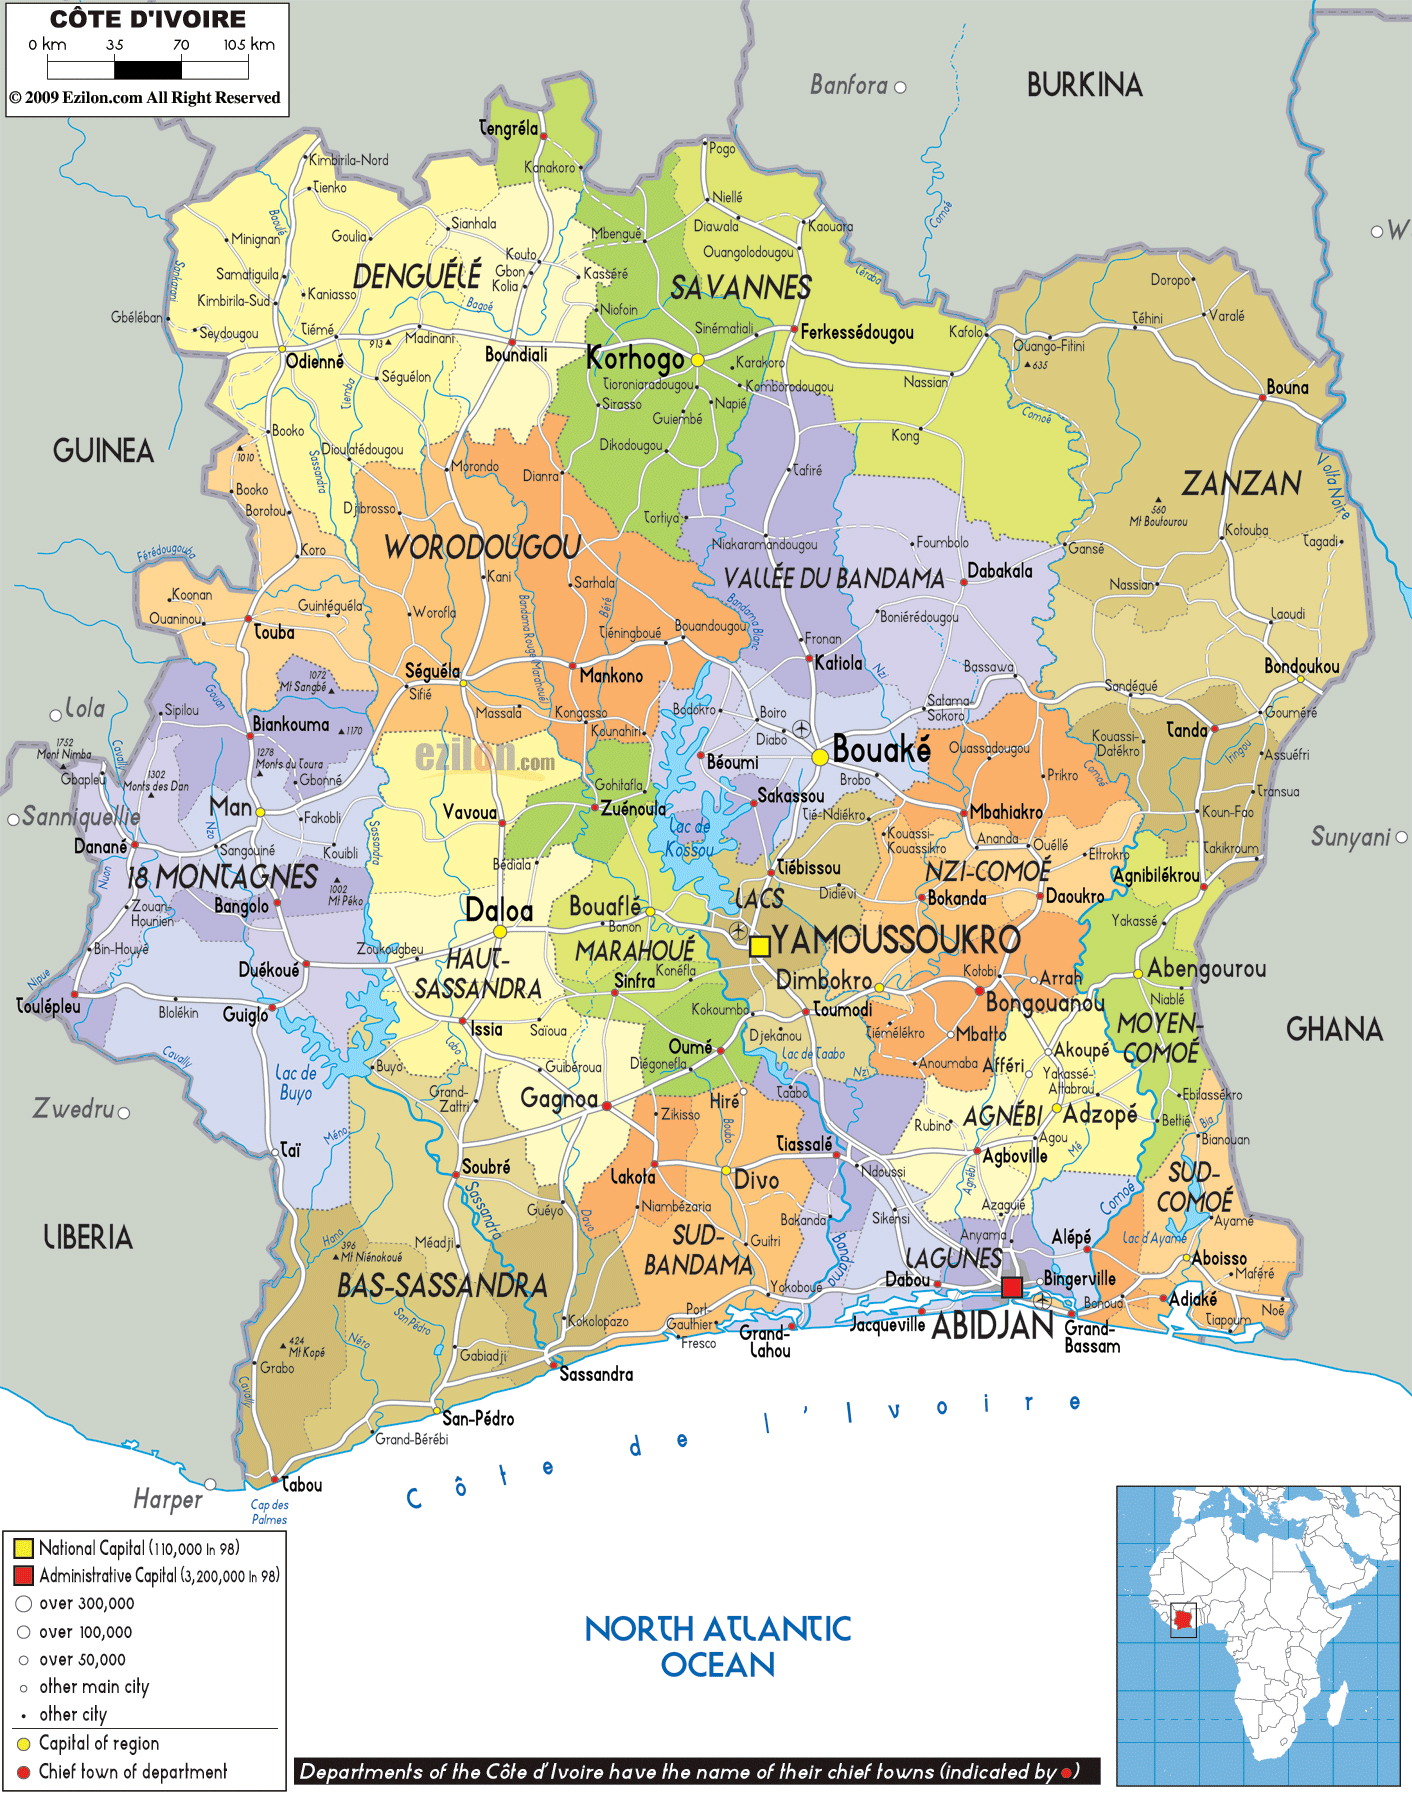 america west coast map with Large Political And Administrative Map Of Ivory Coast With Roads Cities And Airports on us1 together with Large Political And Administrative Map Of Ivory Coast With Roads Cities And Airports together with Canada also Guinea Maps additionally Jamaica.